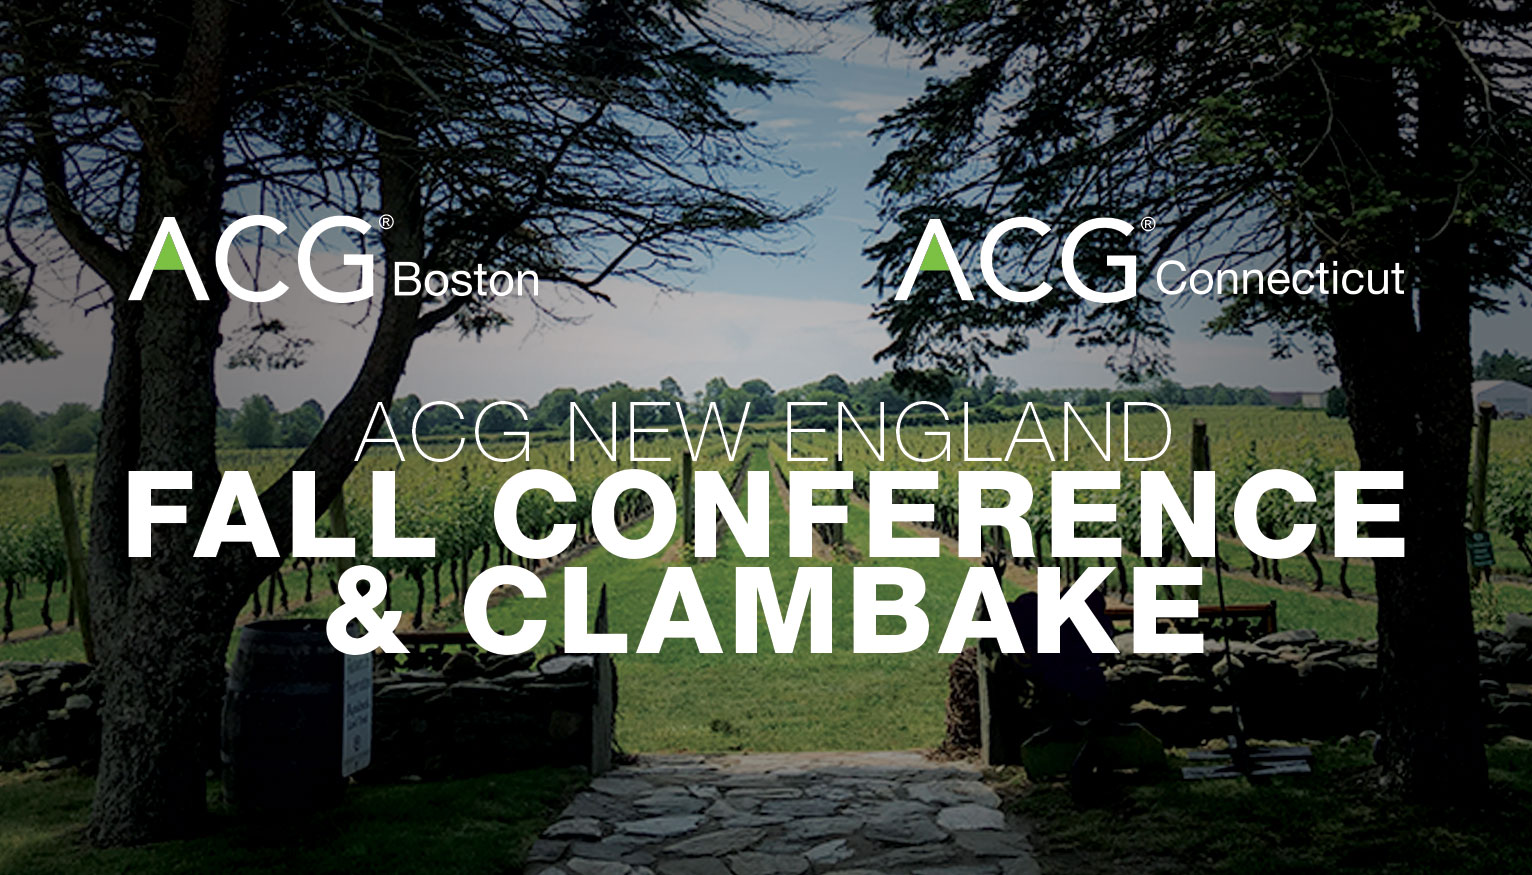 ACG New England Fall Conference & Clambake